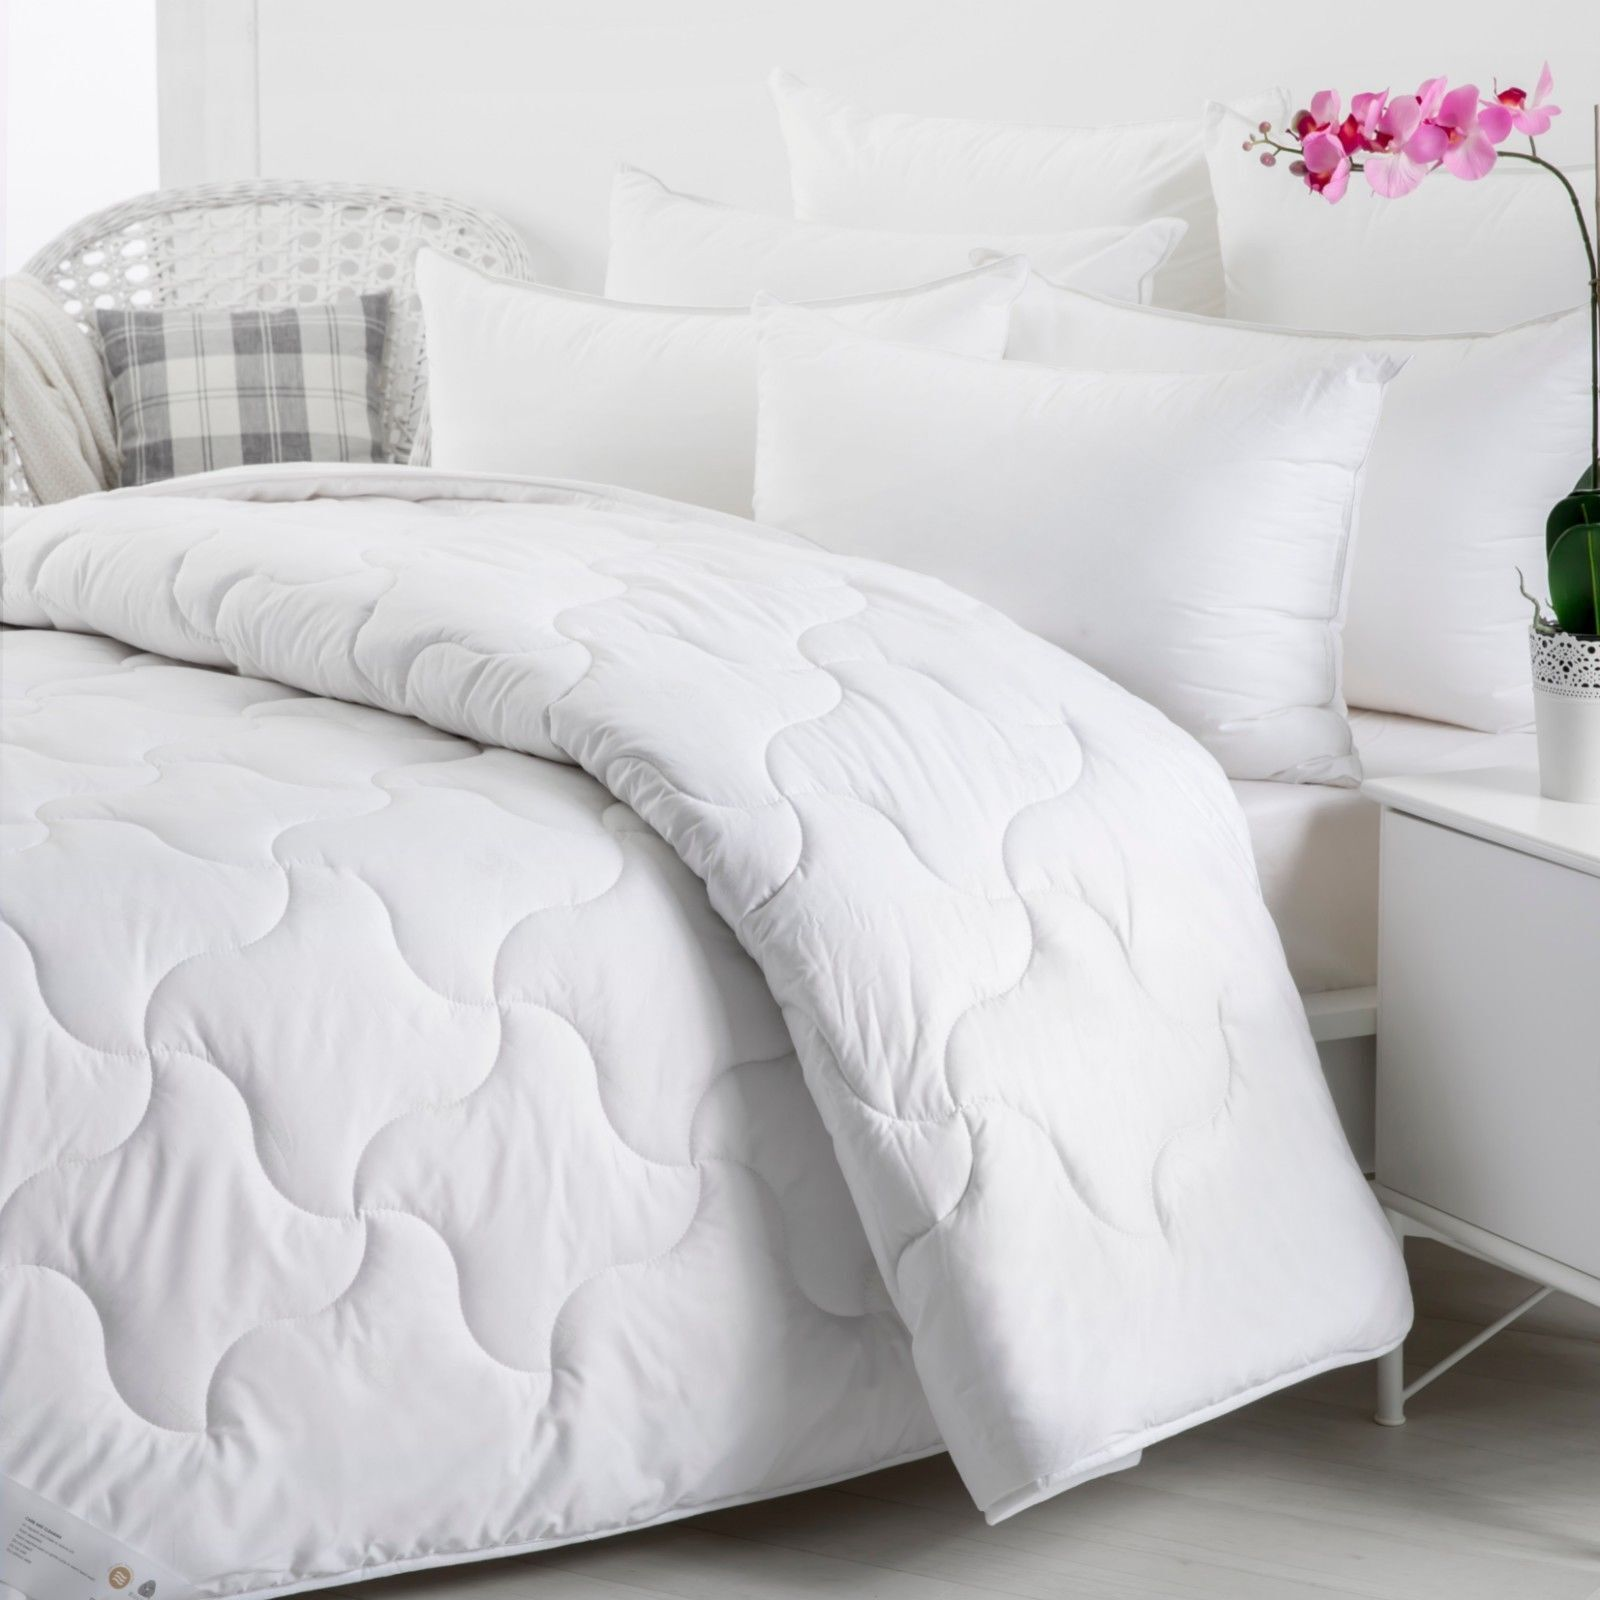 Wooltara Imperial Luxury 450Gsm Washable Winter Australia Wool Quilt - Super King Bed